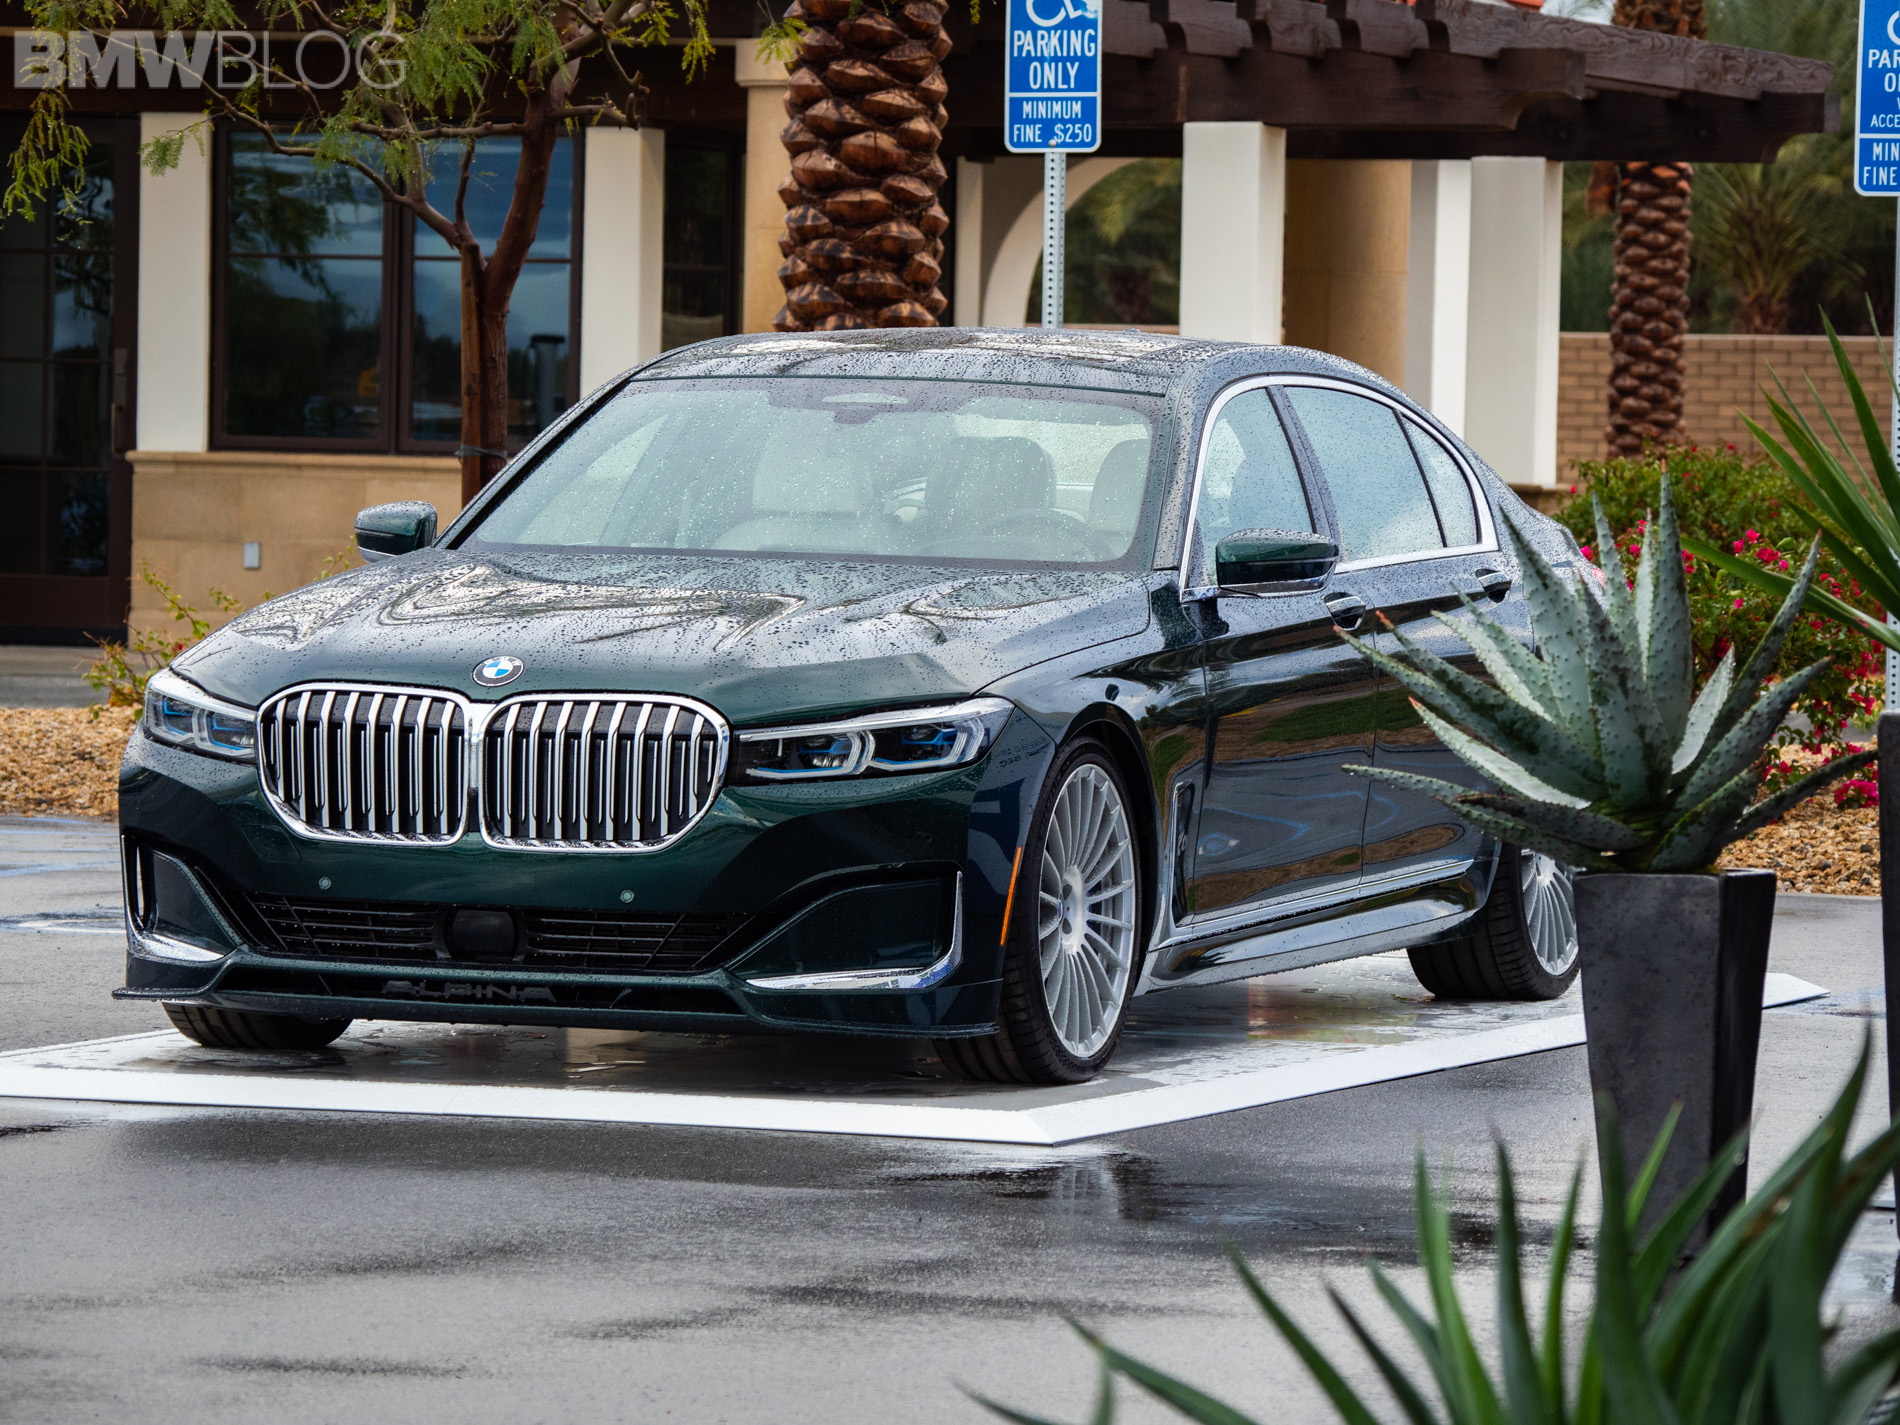 More Real Life Photos Of The Stunning 2020 Alpina B7 In